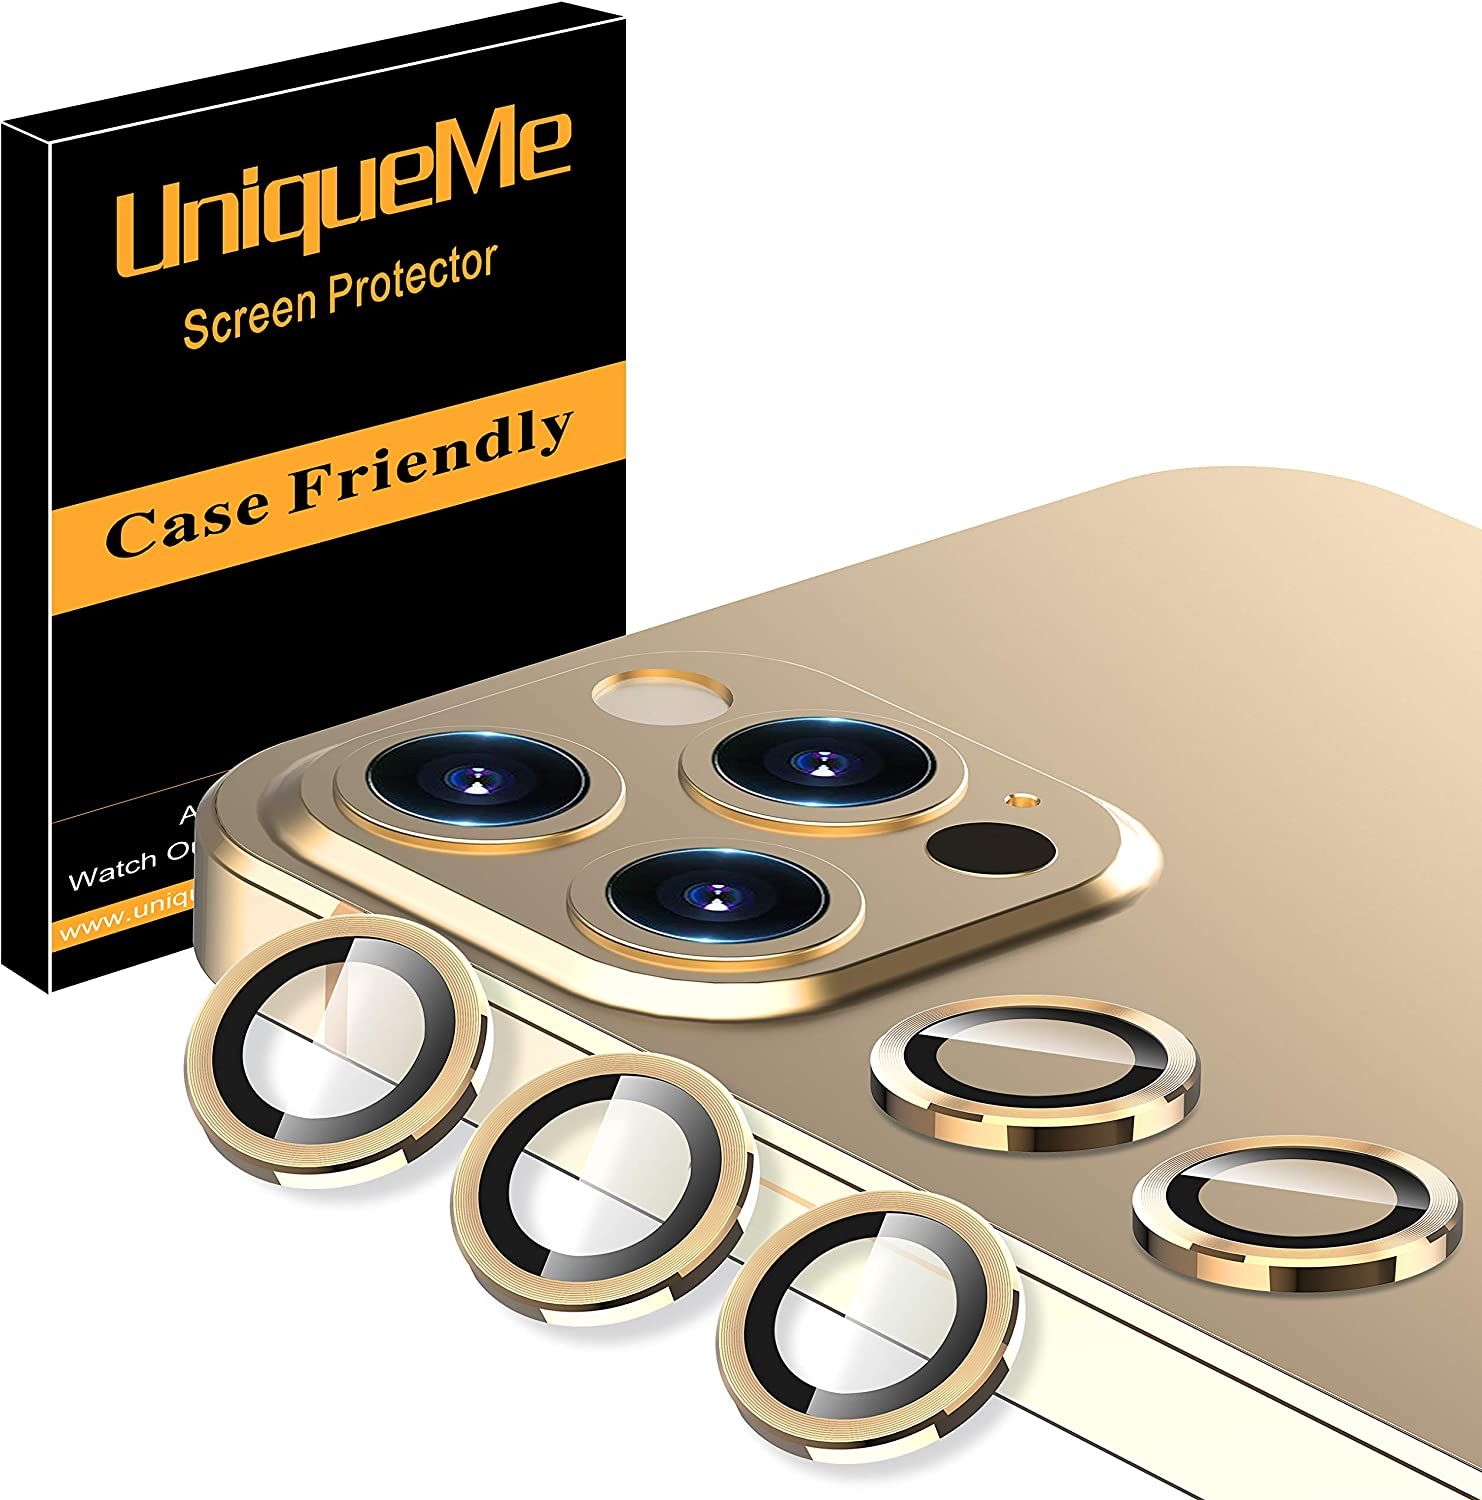 5 Pack UniqueMe Camera Lens Protector iPhone Time sale Manufacturer regenerated product 12 for Compatible